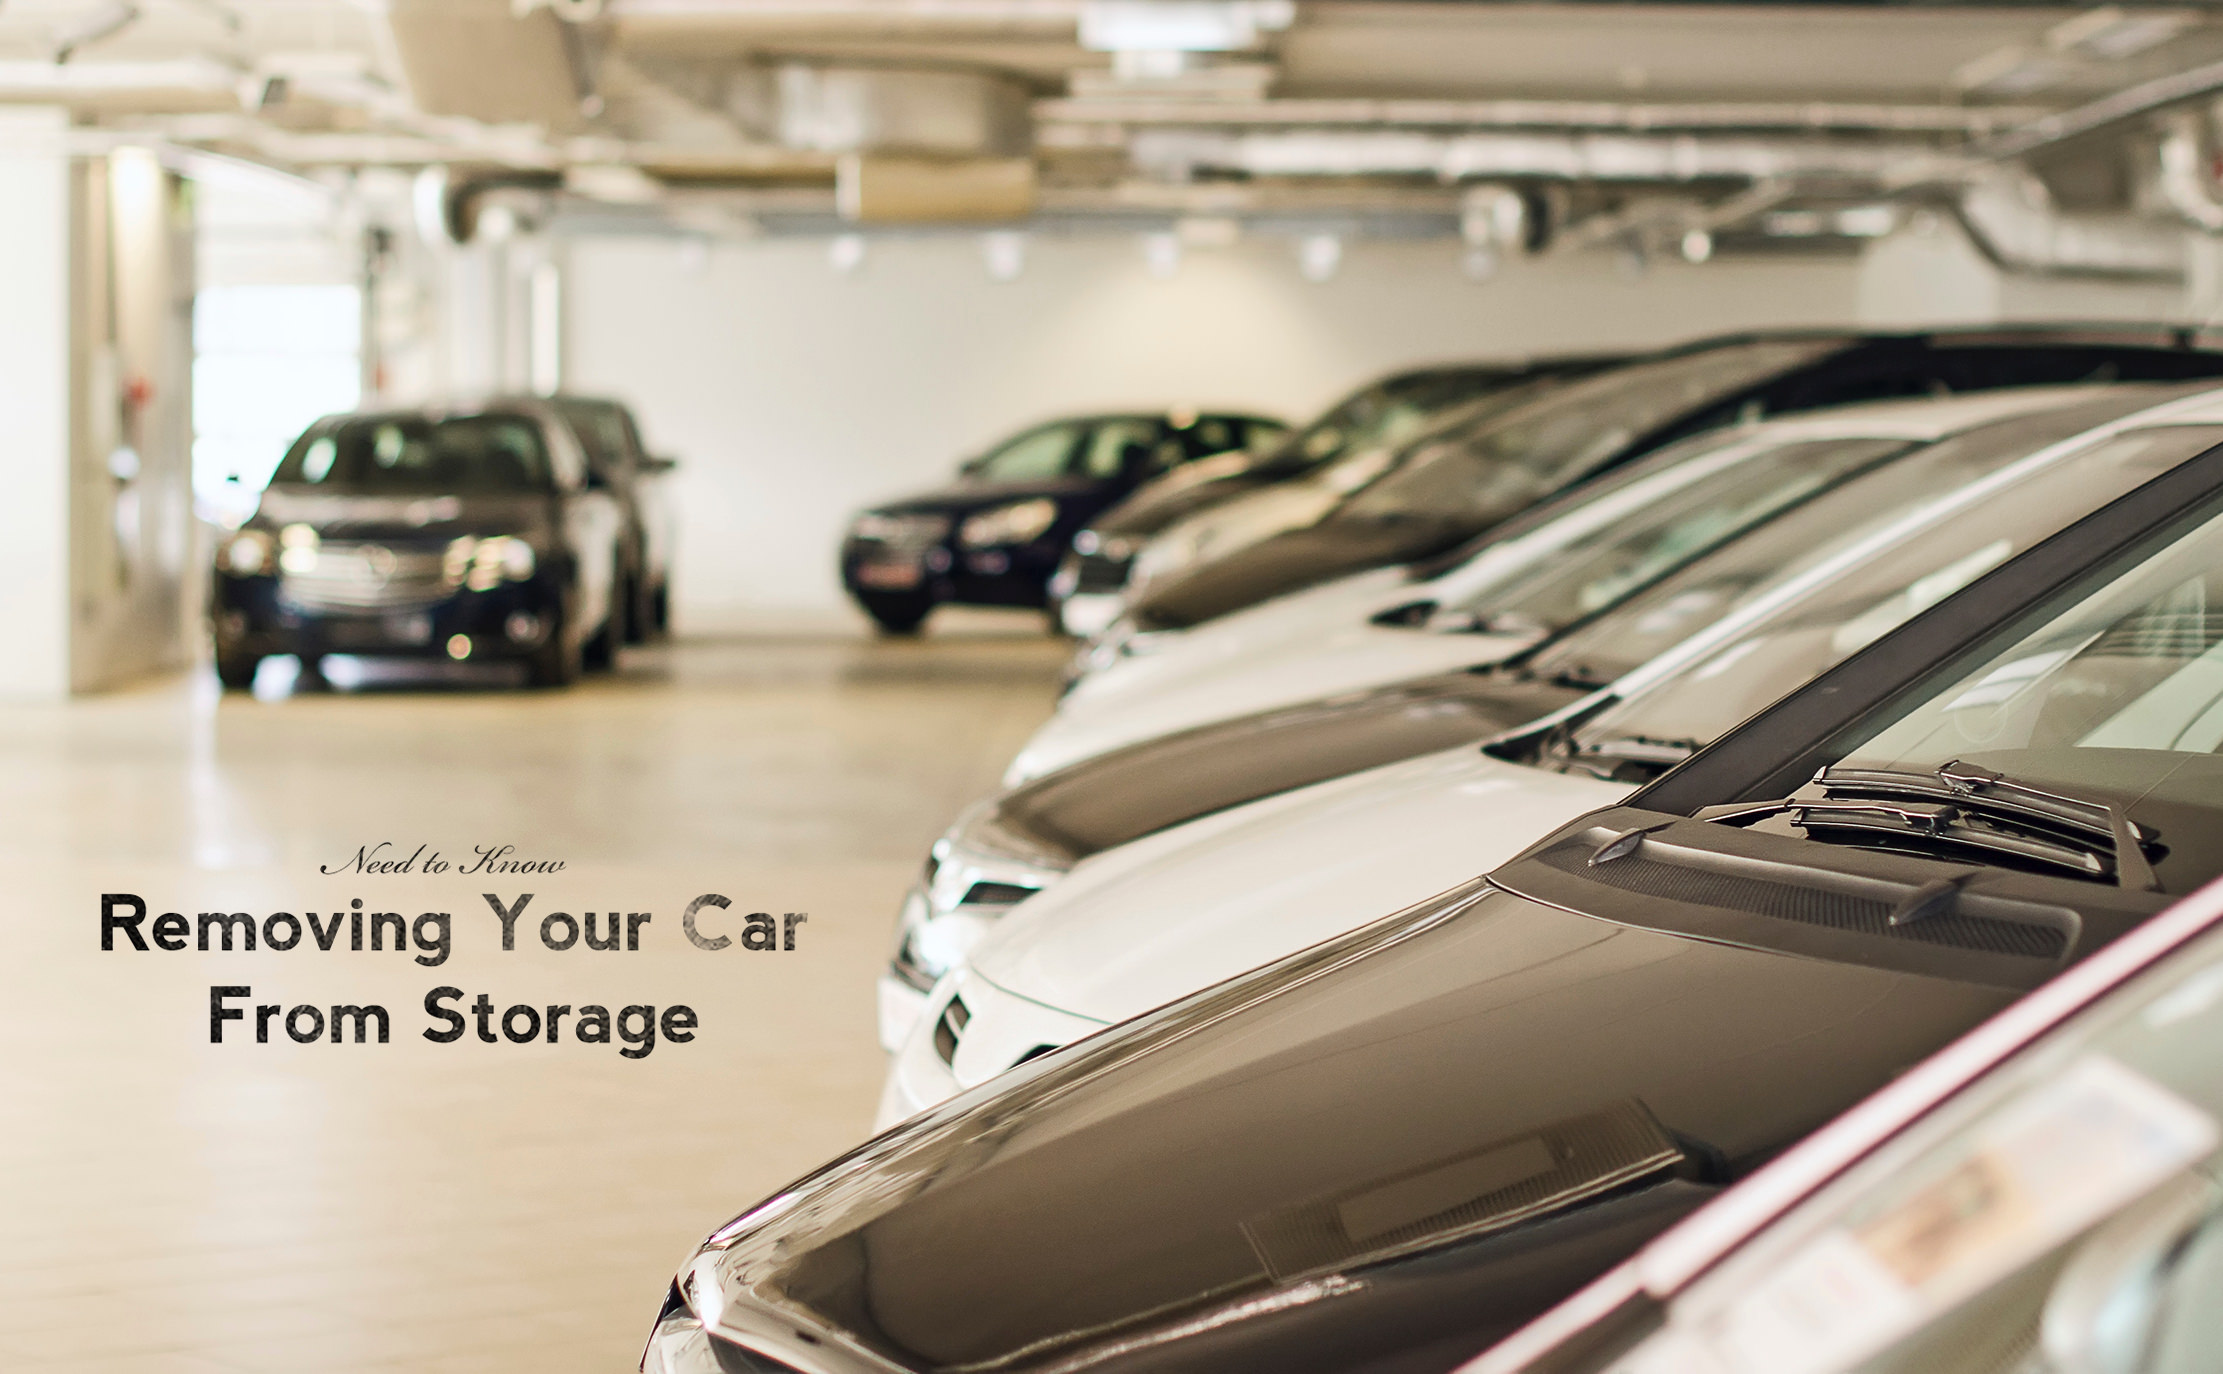 Need to Know: Removing Your Car From Storage